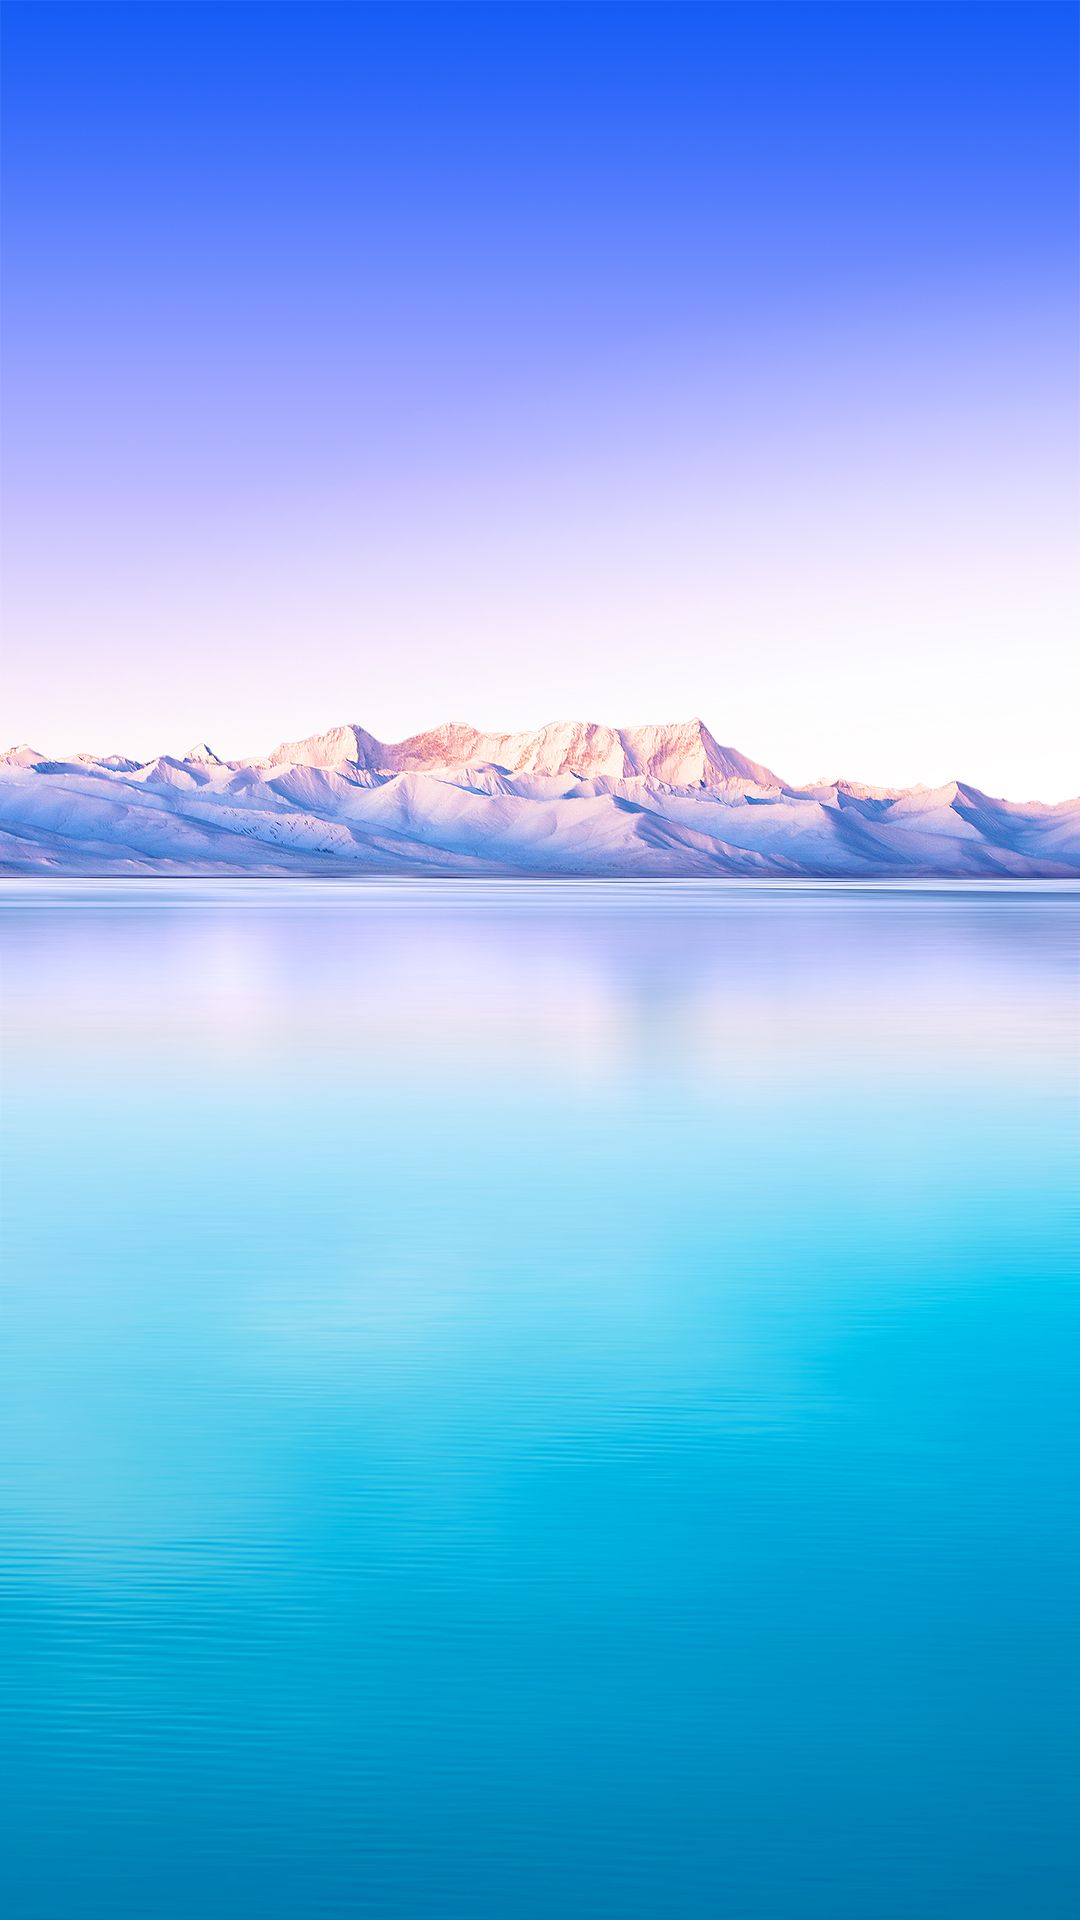 beautiful waters of aqua blue | wallpaper in 2018 | pinterest | aqua